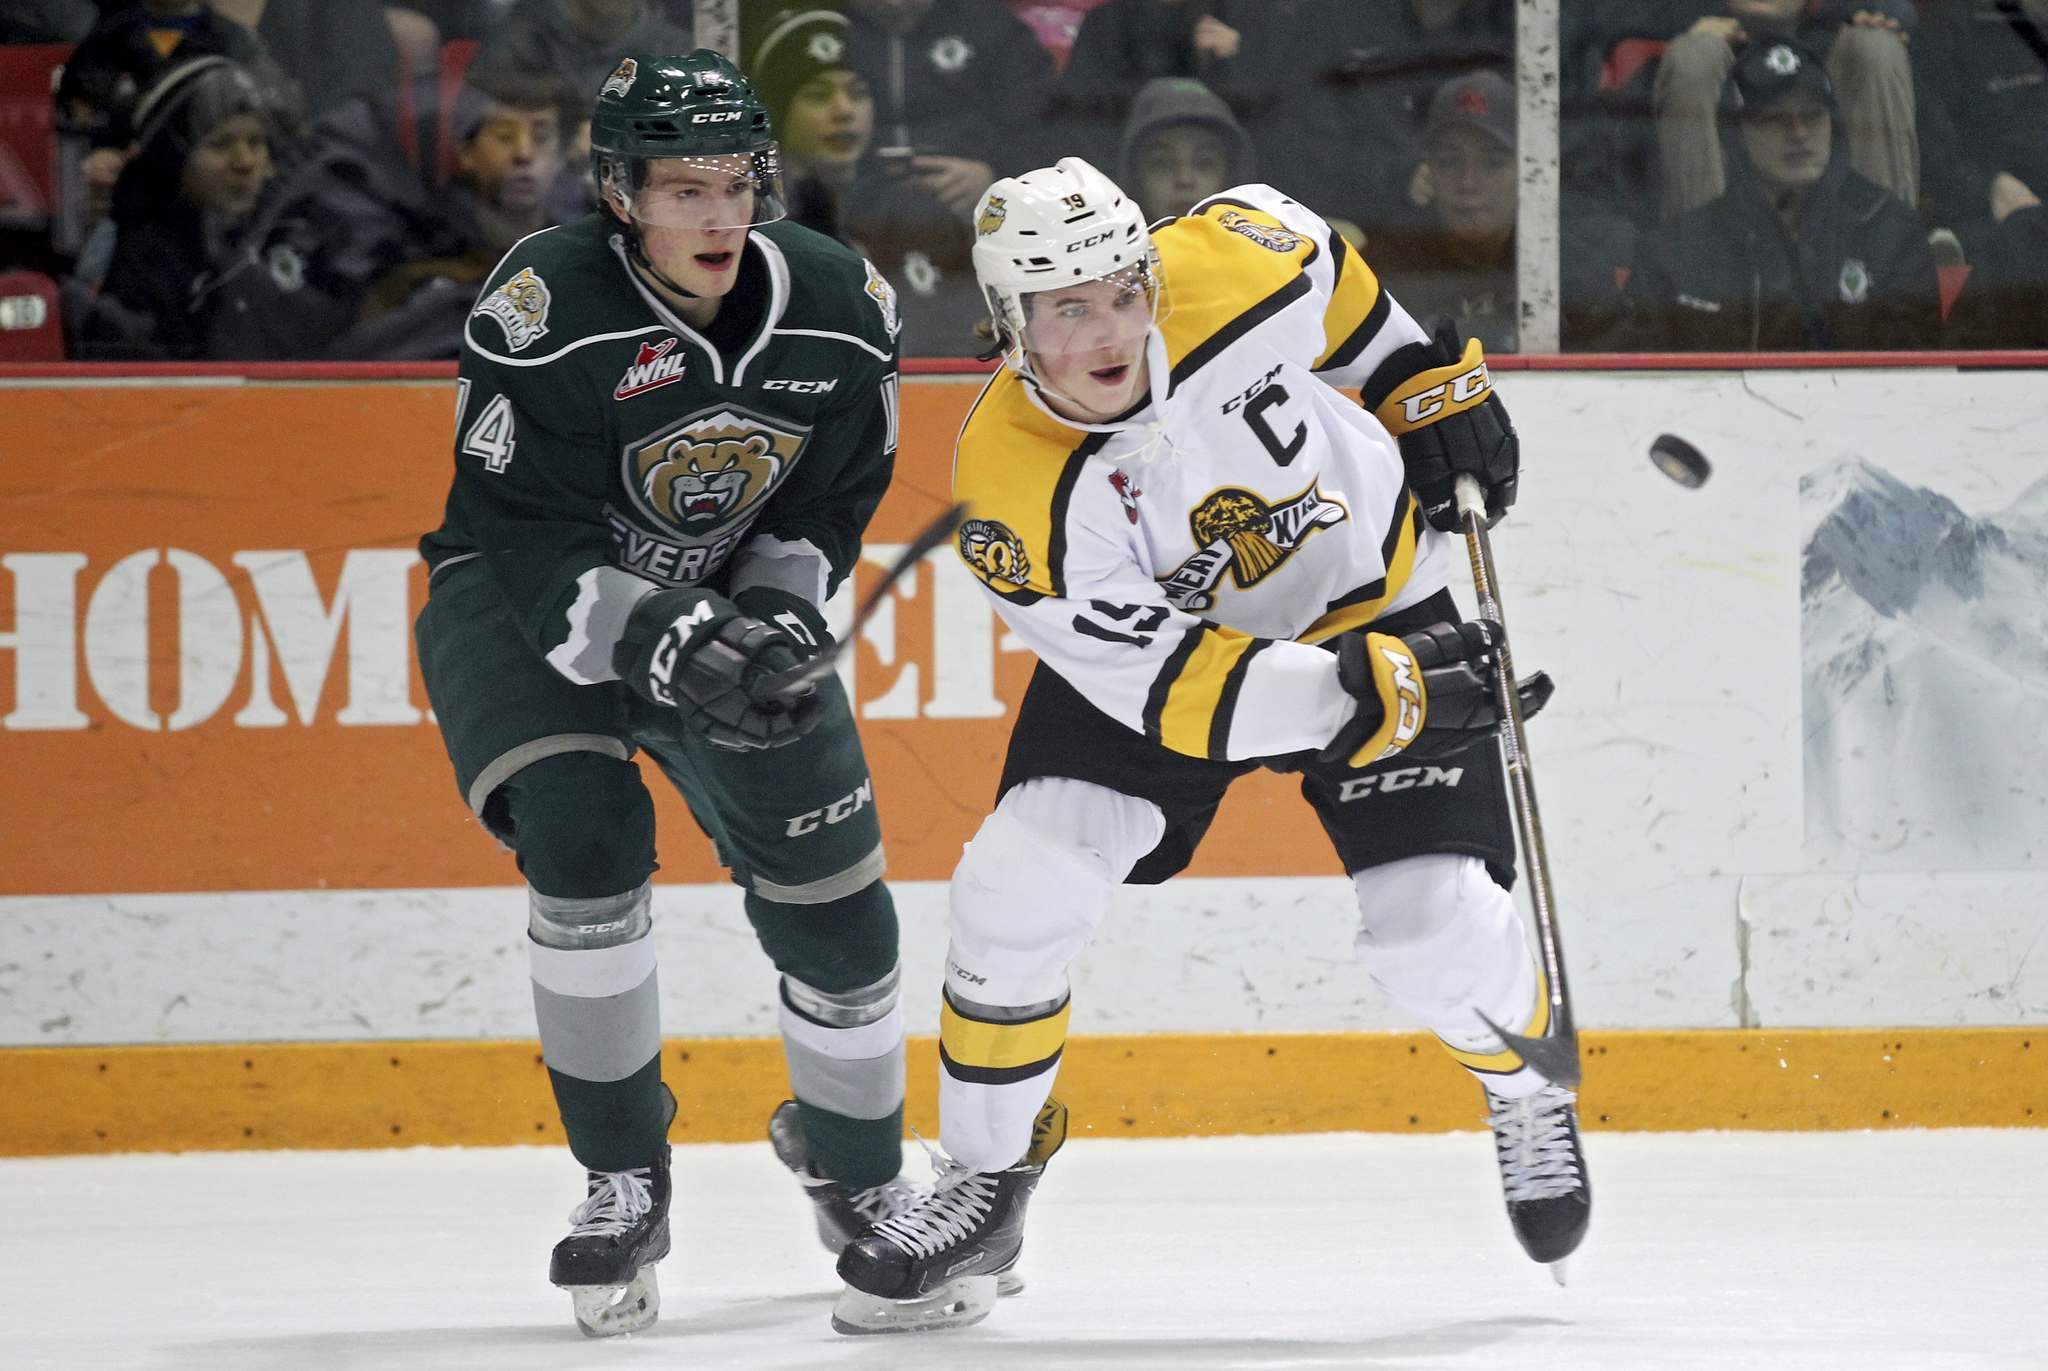 Tim Smith/The Brandon Sun Files</p><p>Brandon Wheat Kings&#39; Nolan Patrick, right, and Riley Sutter of the Everett Silvertips battle during WHL action. The Wheat Kings, Manitoba&#39;s only major junior franchise, don&#39;t have the same legal protection as teams in other provinces which exempts them from employment standards acts and defines WHL players as amateur athletes.</p>